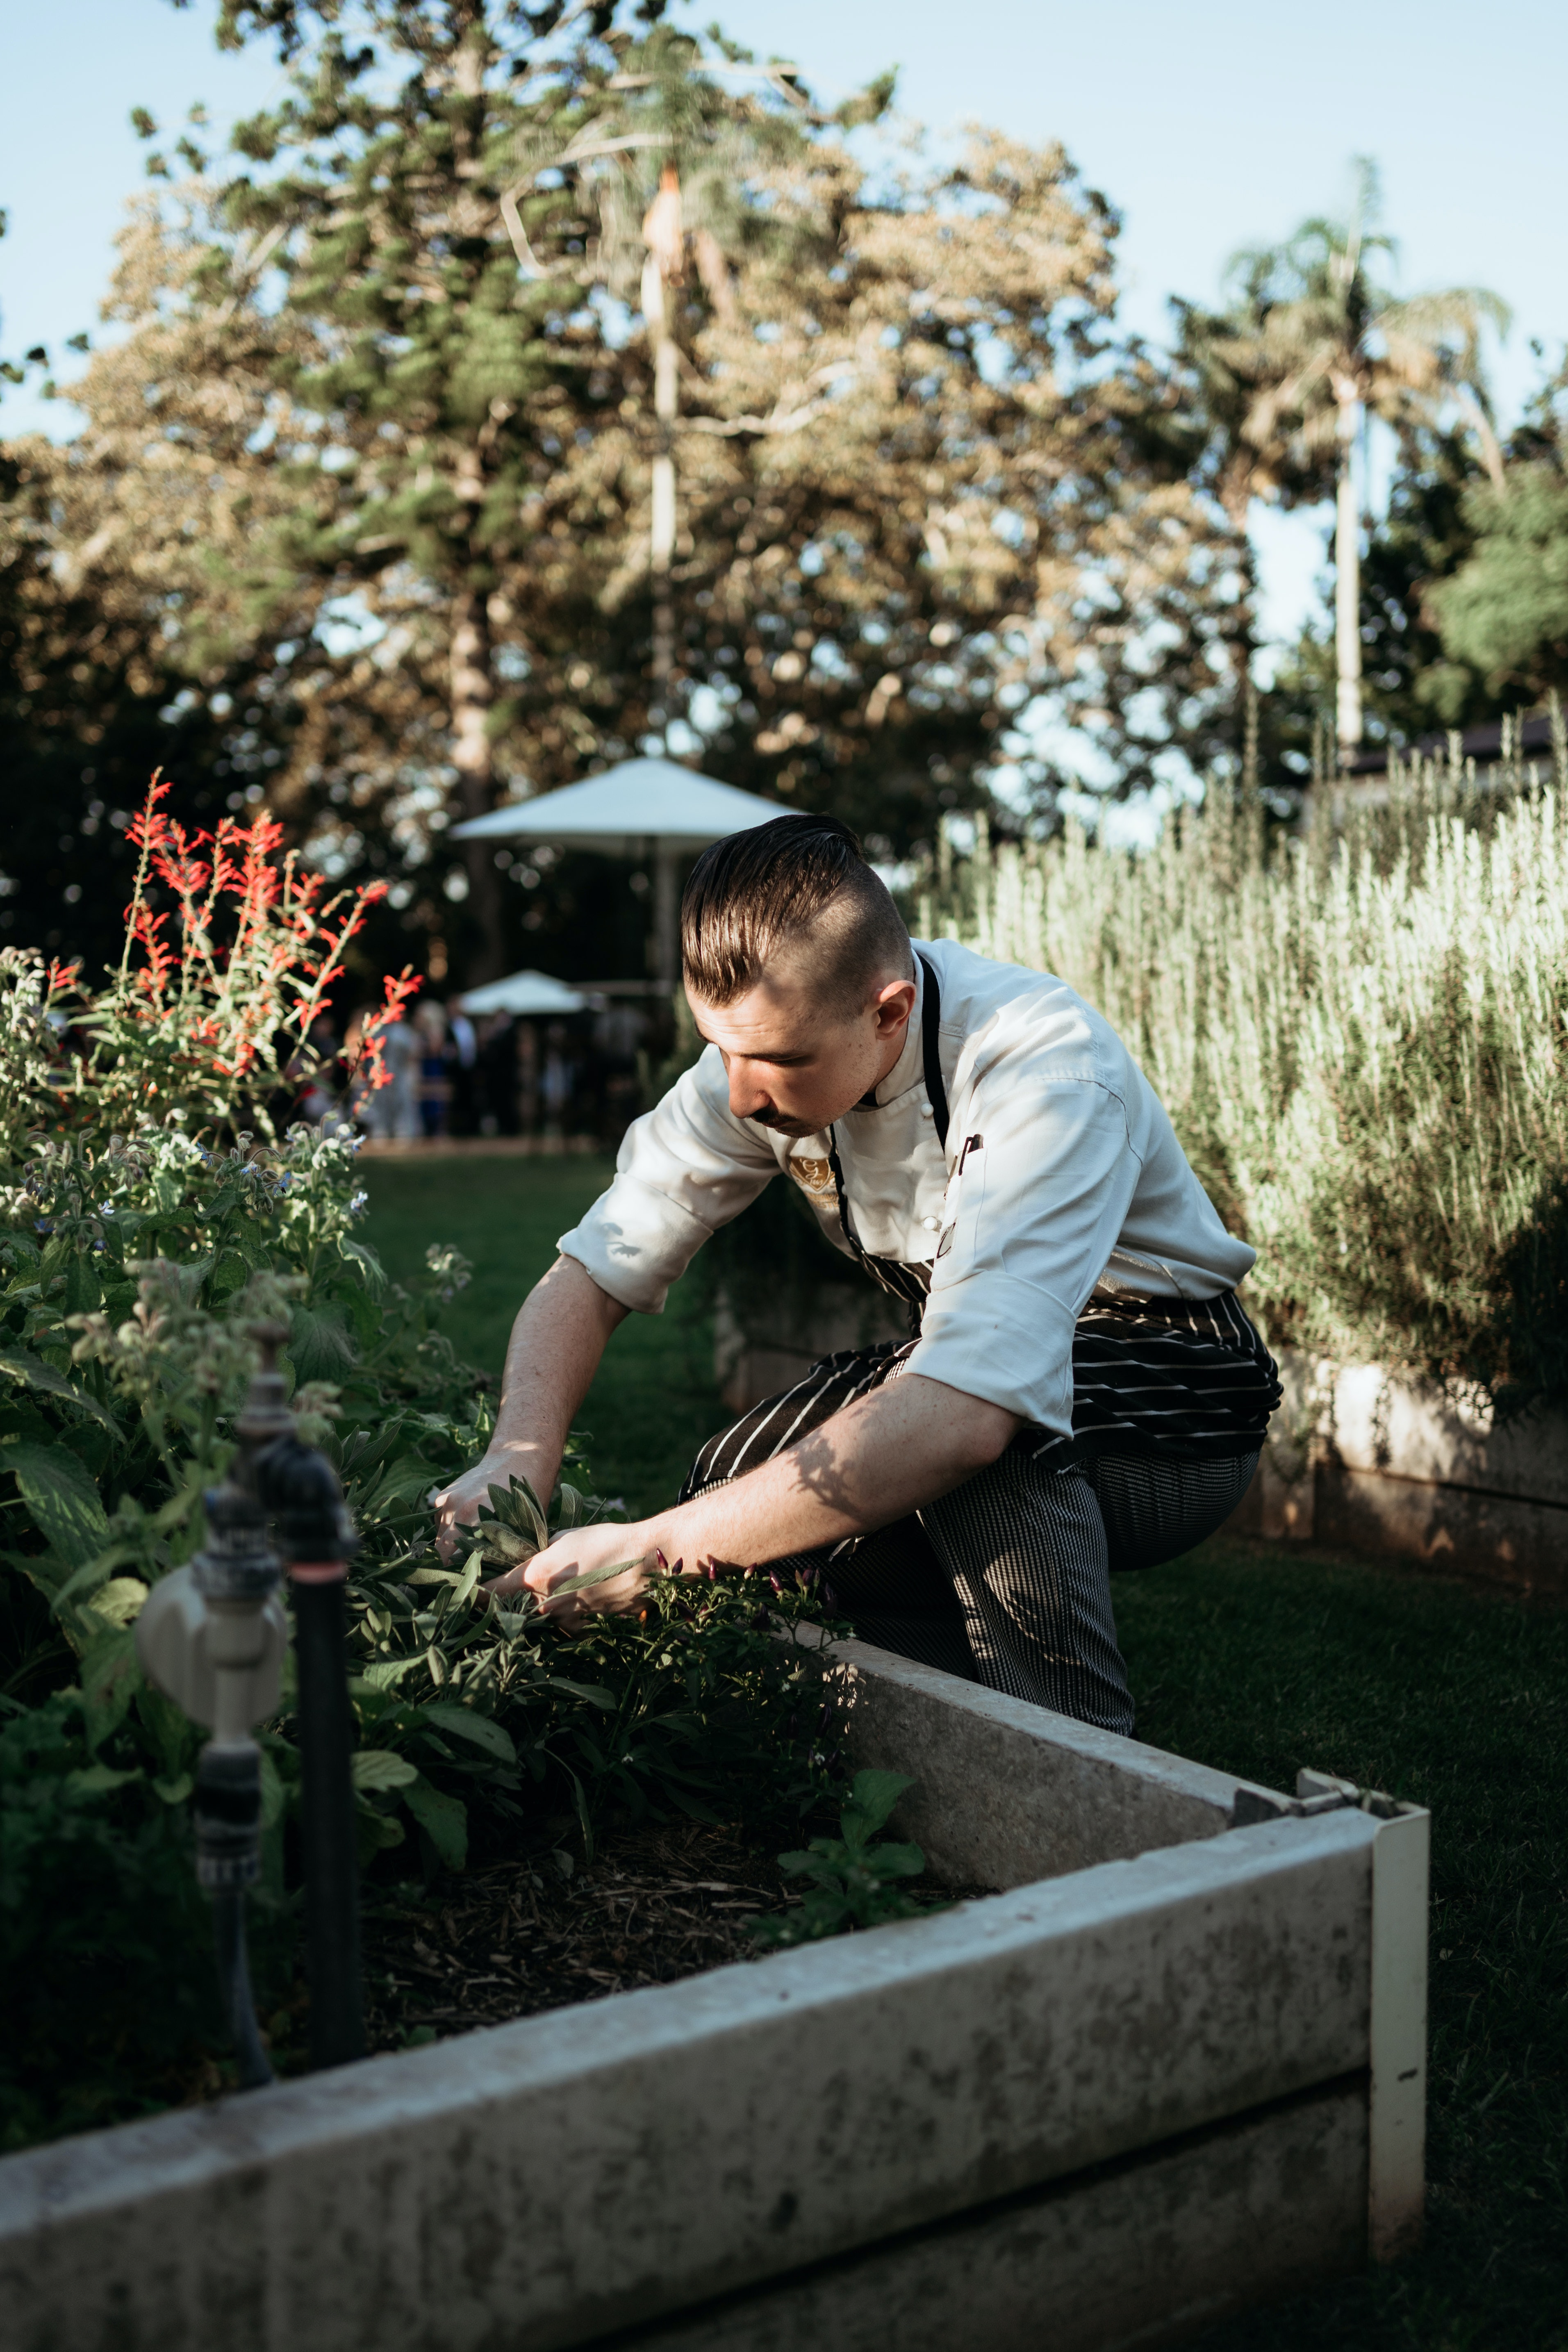 Chef looks in vegetable patch